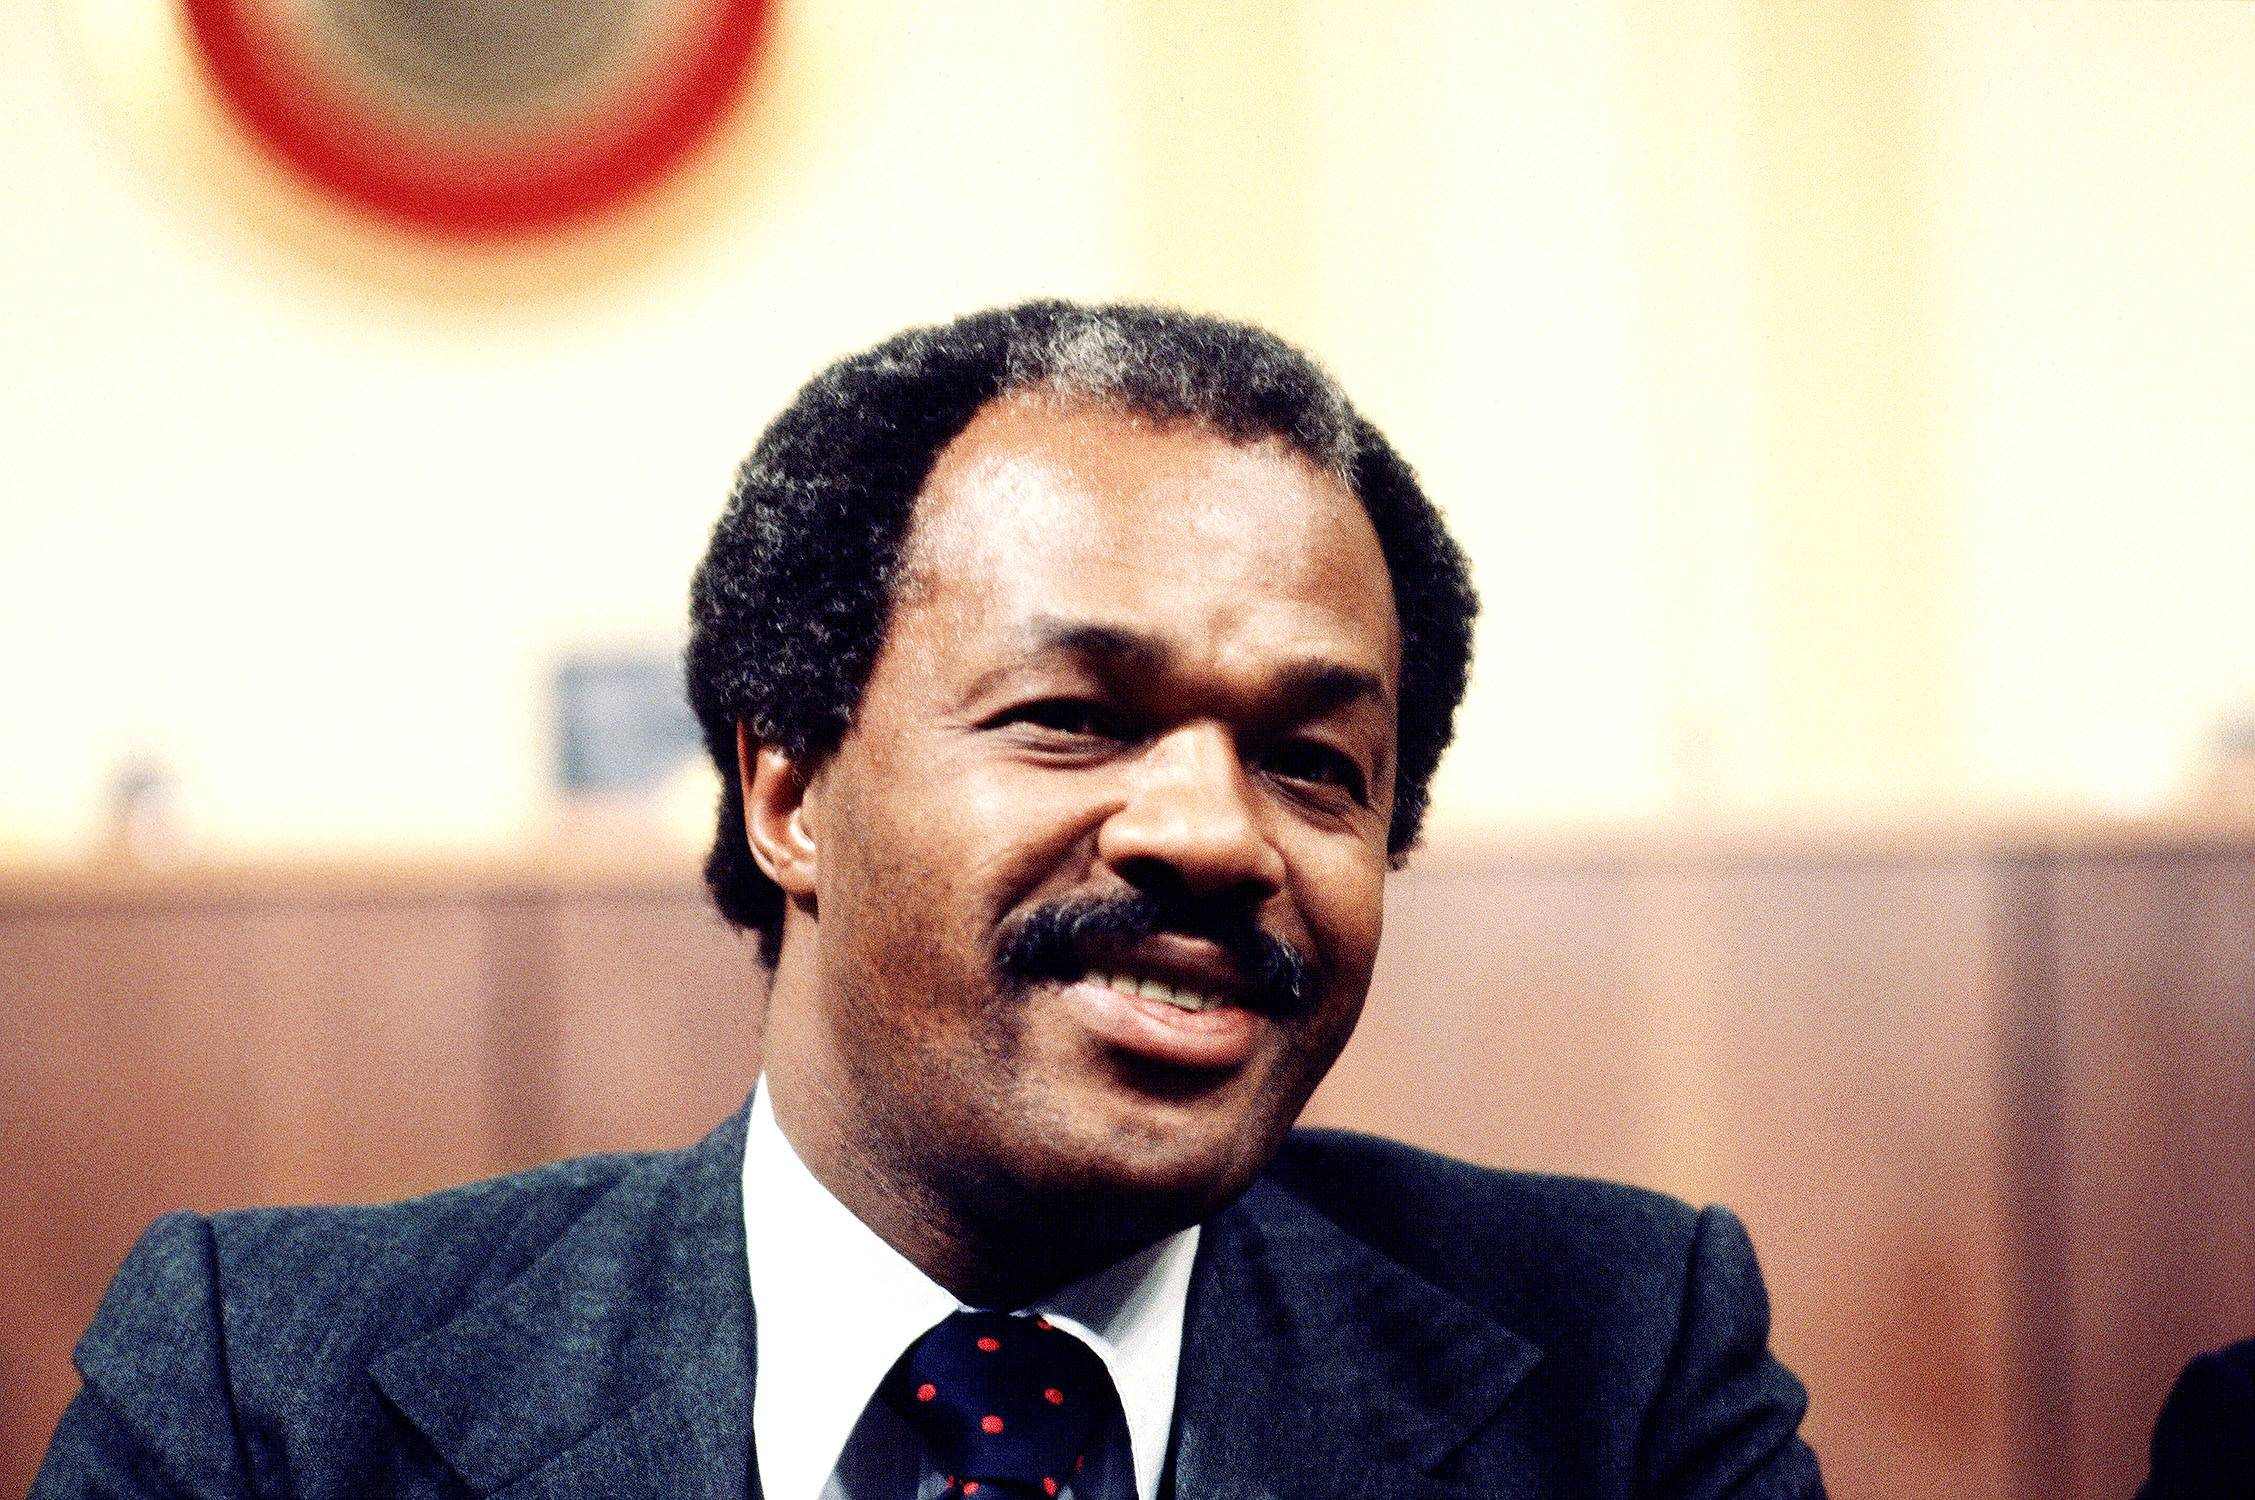 R.I.P. - Marion Barry was many things to many people. To some he was a national joke after his infamous fall from grace during an FBI sting in a Washington, D.C., hotel. To tens of thousands of District residents, he was an American hero who opened the doors of opportunity for them and their families. Here's a look at some of the highs and lows in the life of Marion Barry, who died on Nov. 23, 2014. ? Joyce Jones (@BETpolitichick)  (Photo: Bettmann/Corbis)